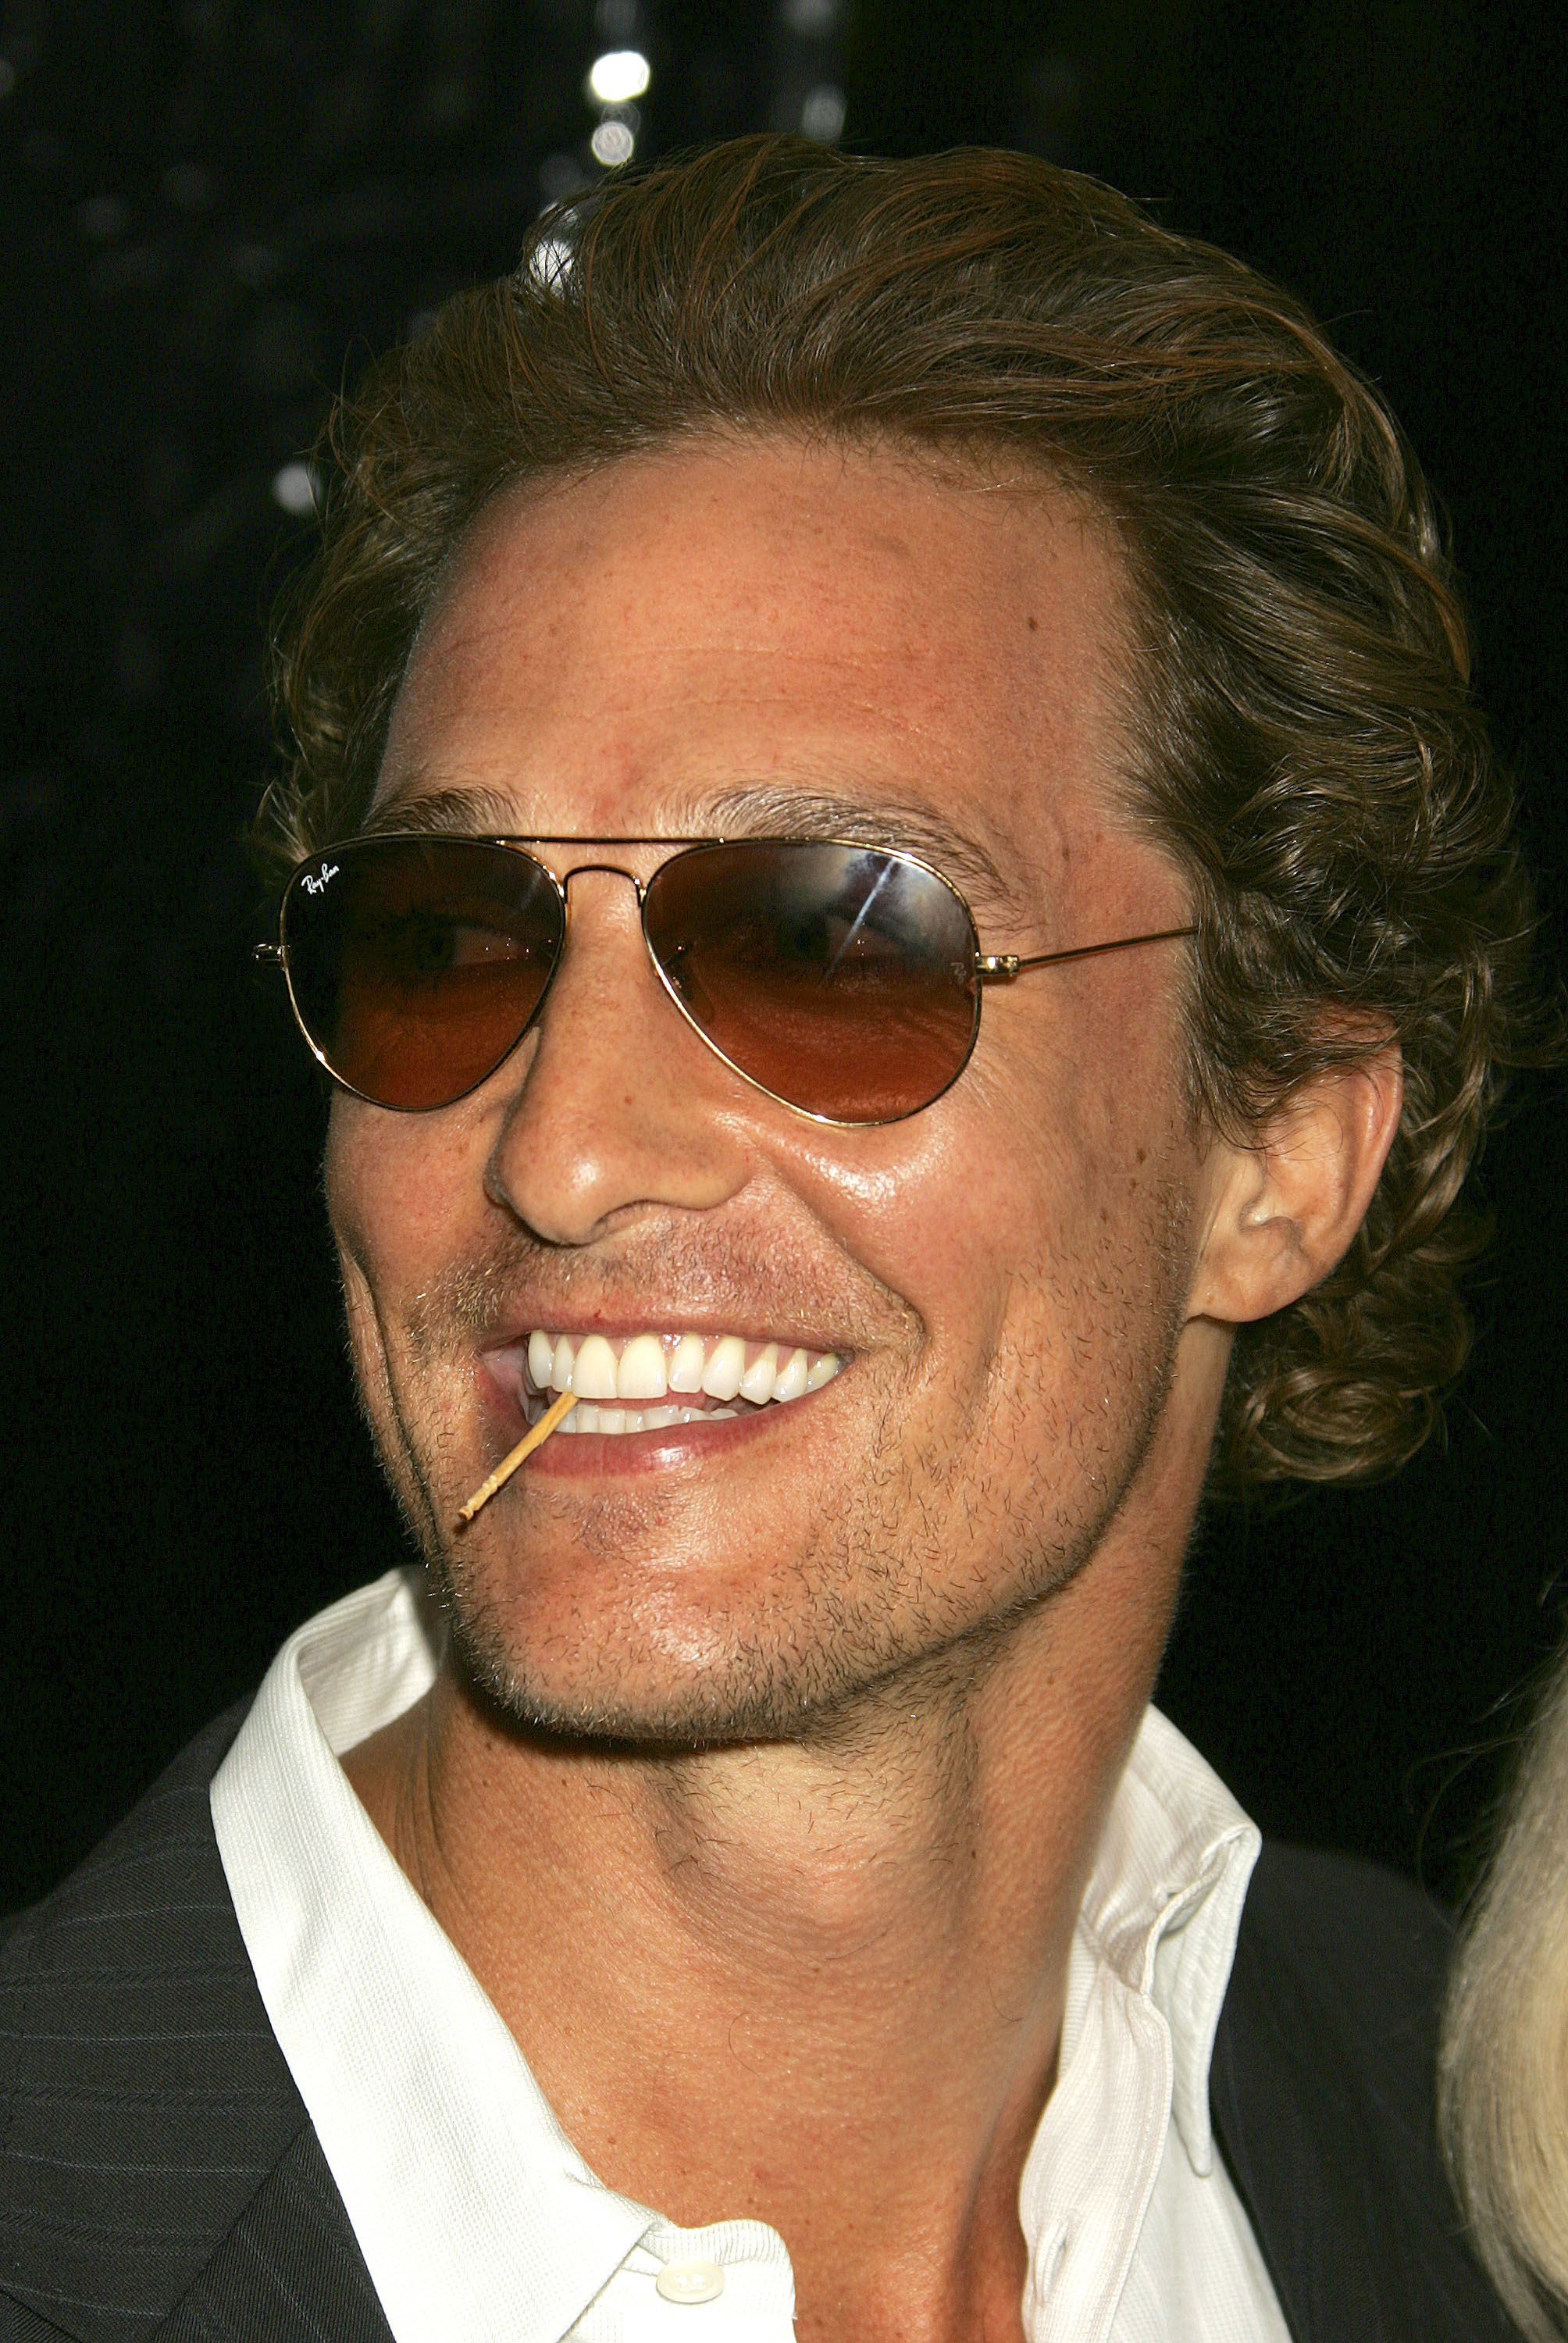 Mens haircuts for 40 year olds matthew mcconaughey  matthew mcconaughey  pinterest  matthew